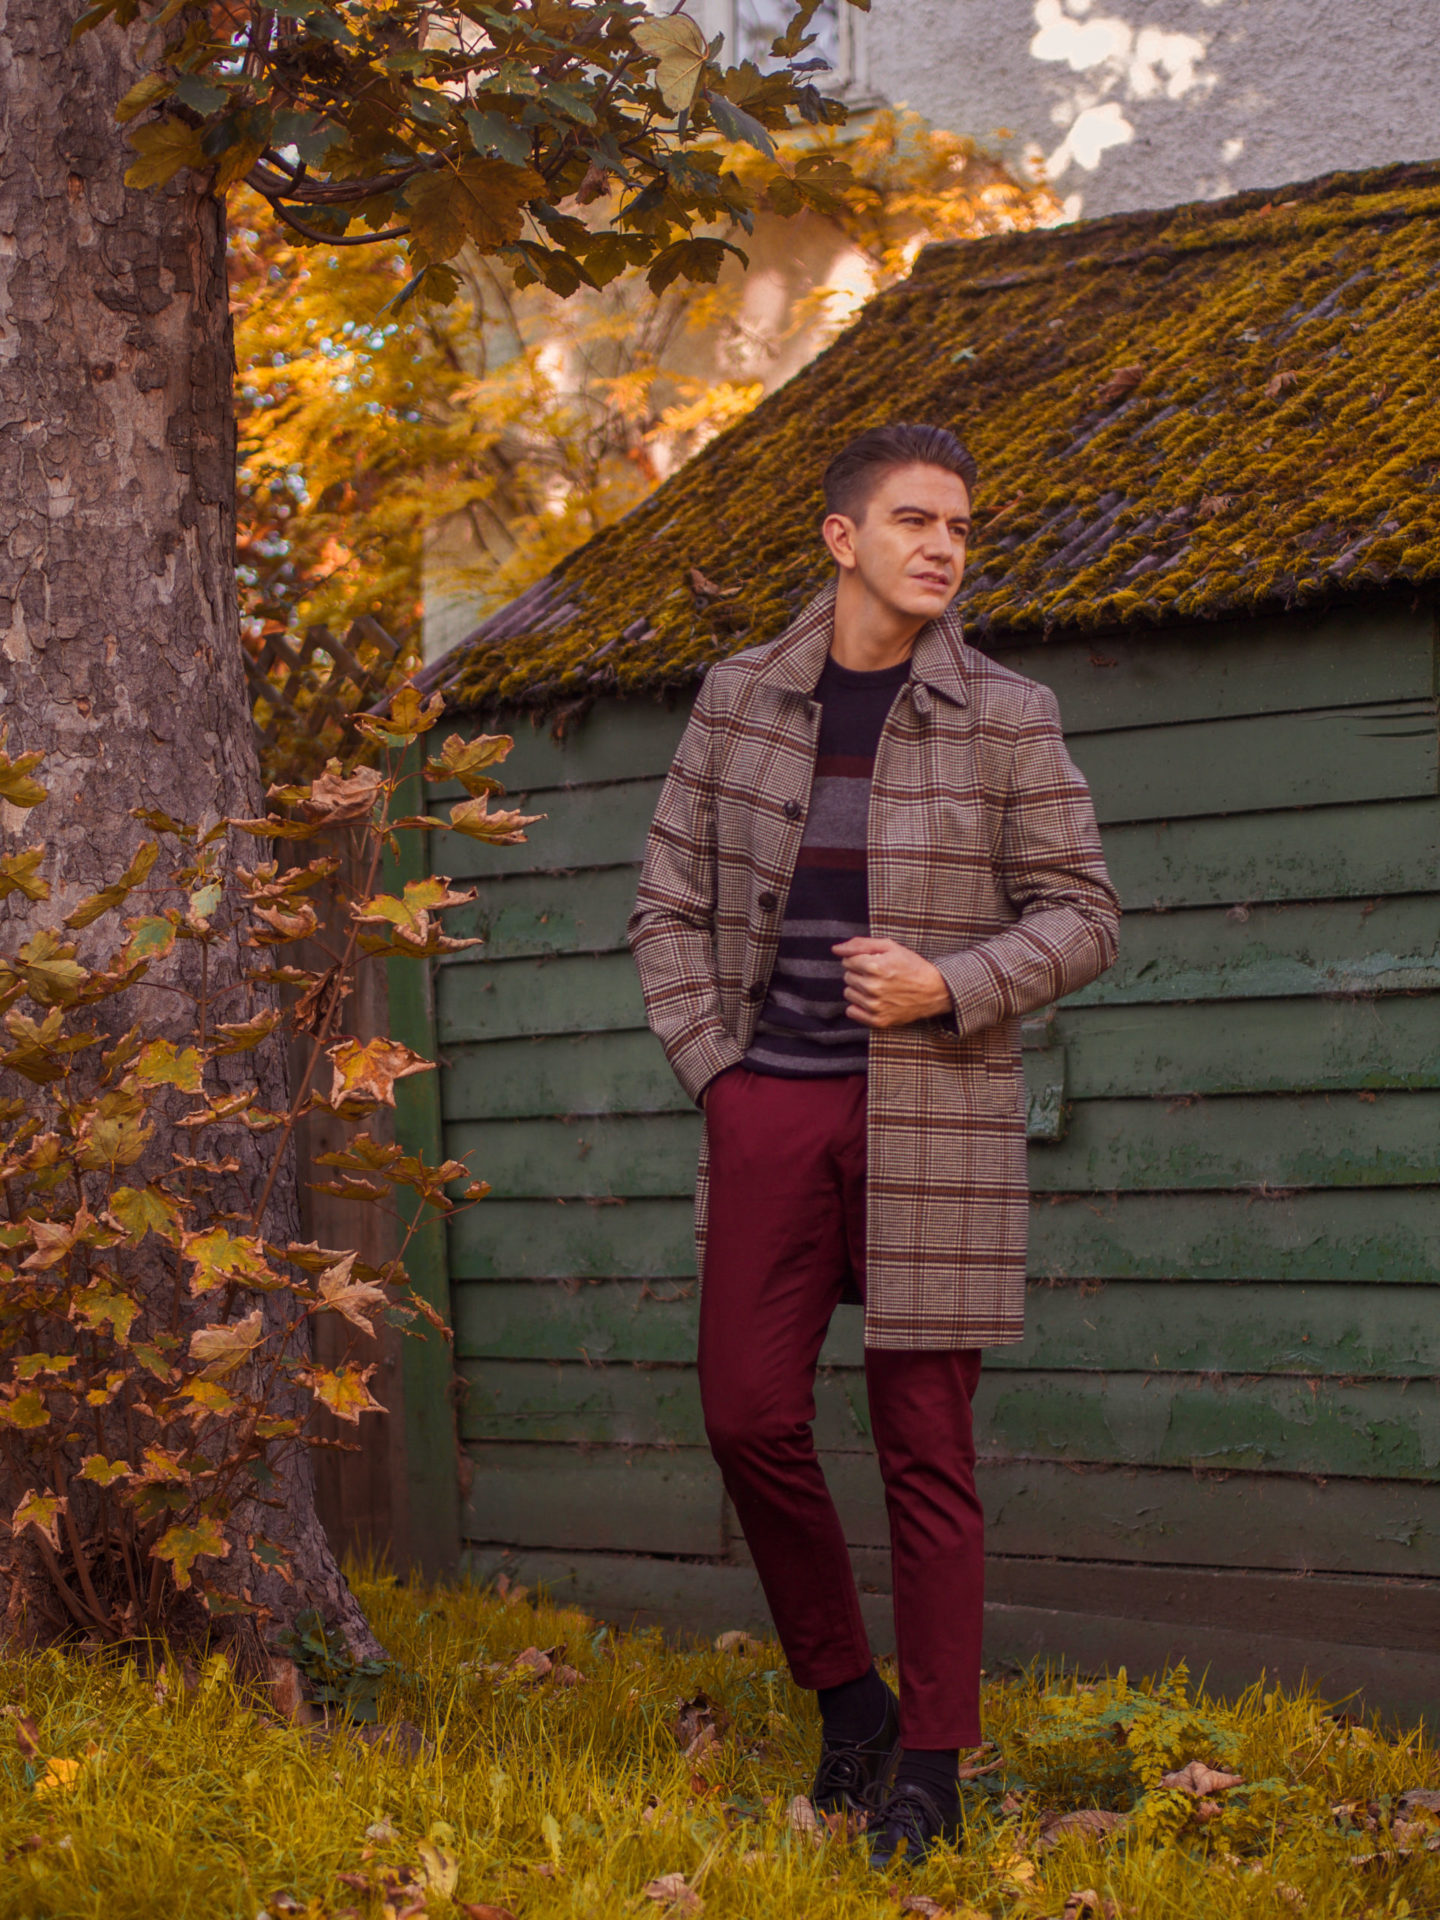 AUTUMN FASHION | MIXING OLD AND NEW